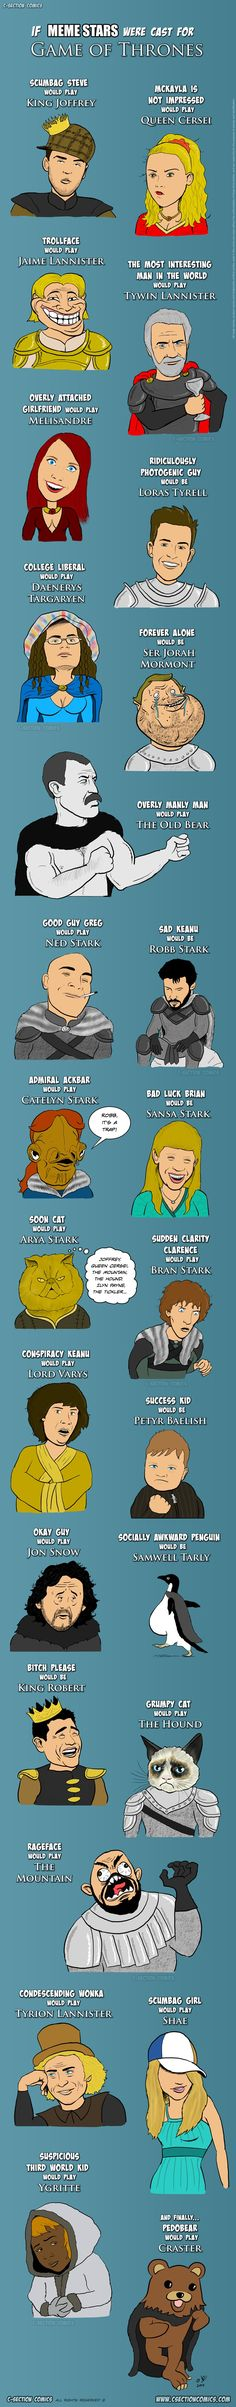 What if Internet MEME Stars Were Cast for the Game of Thrones